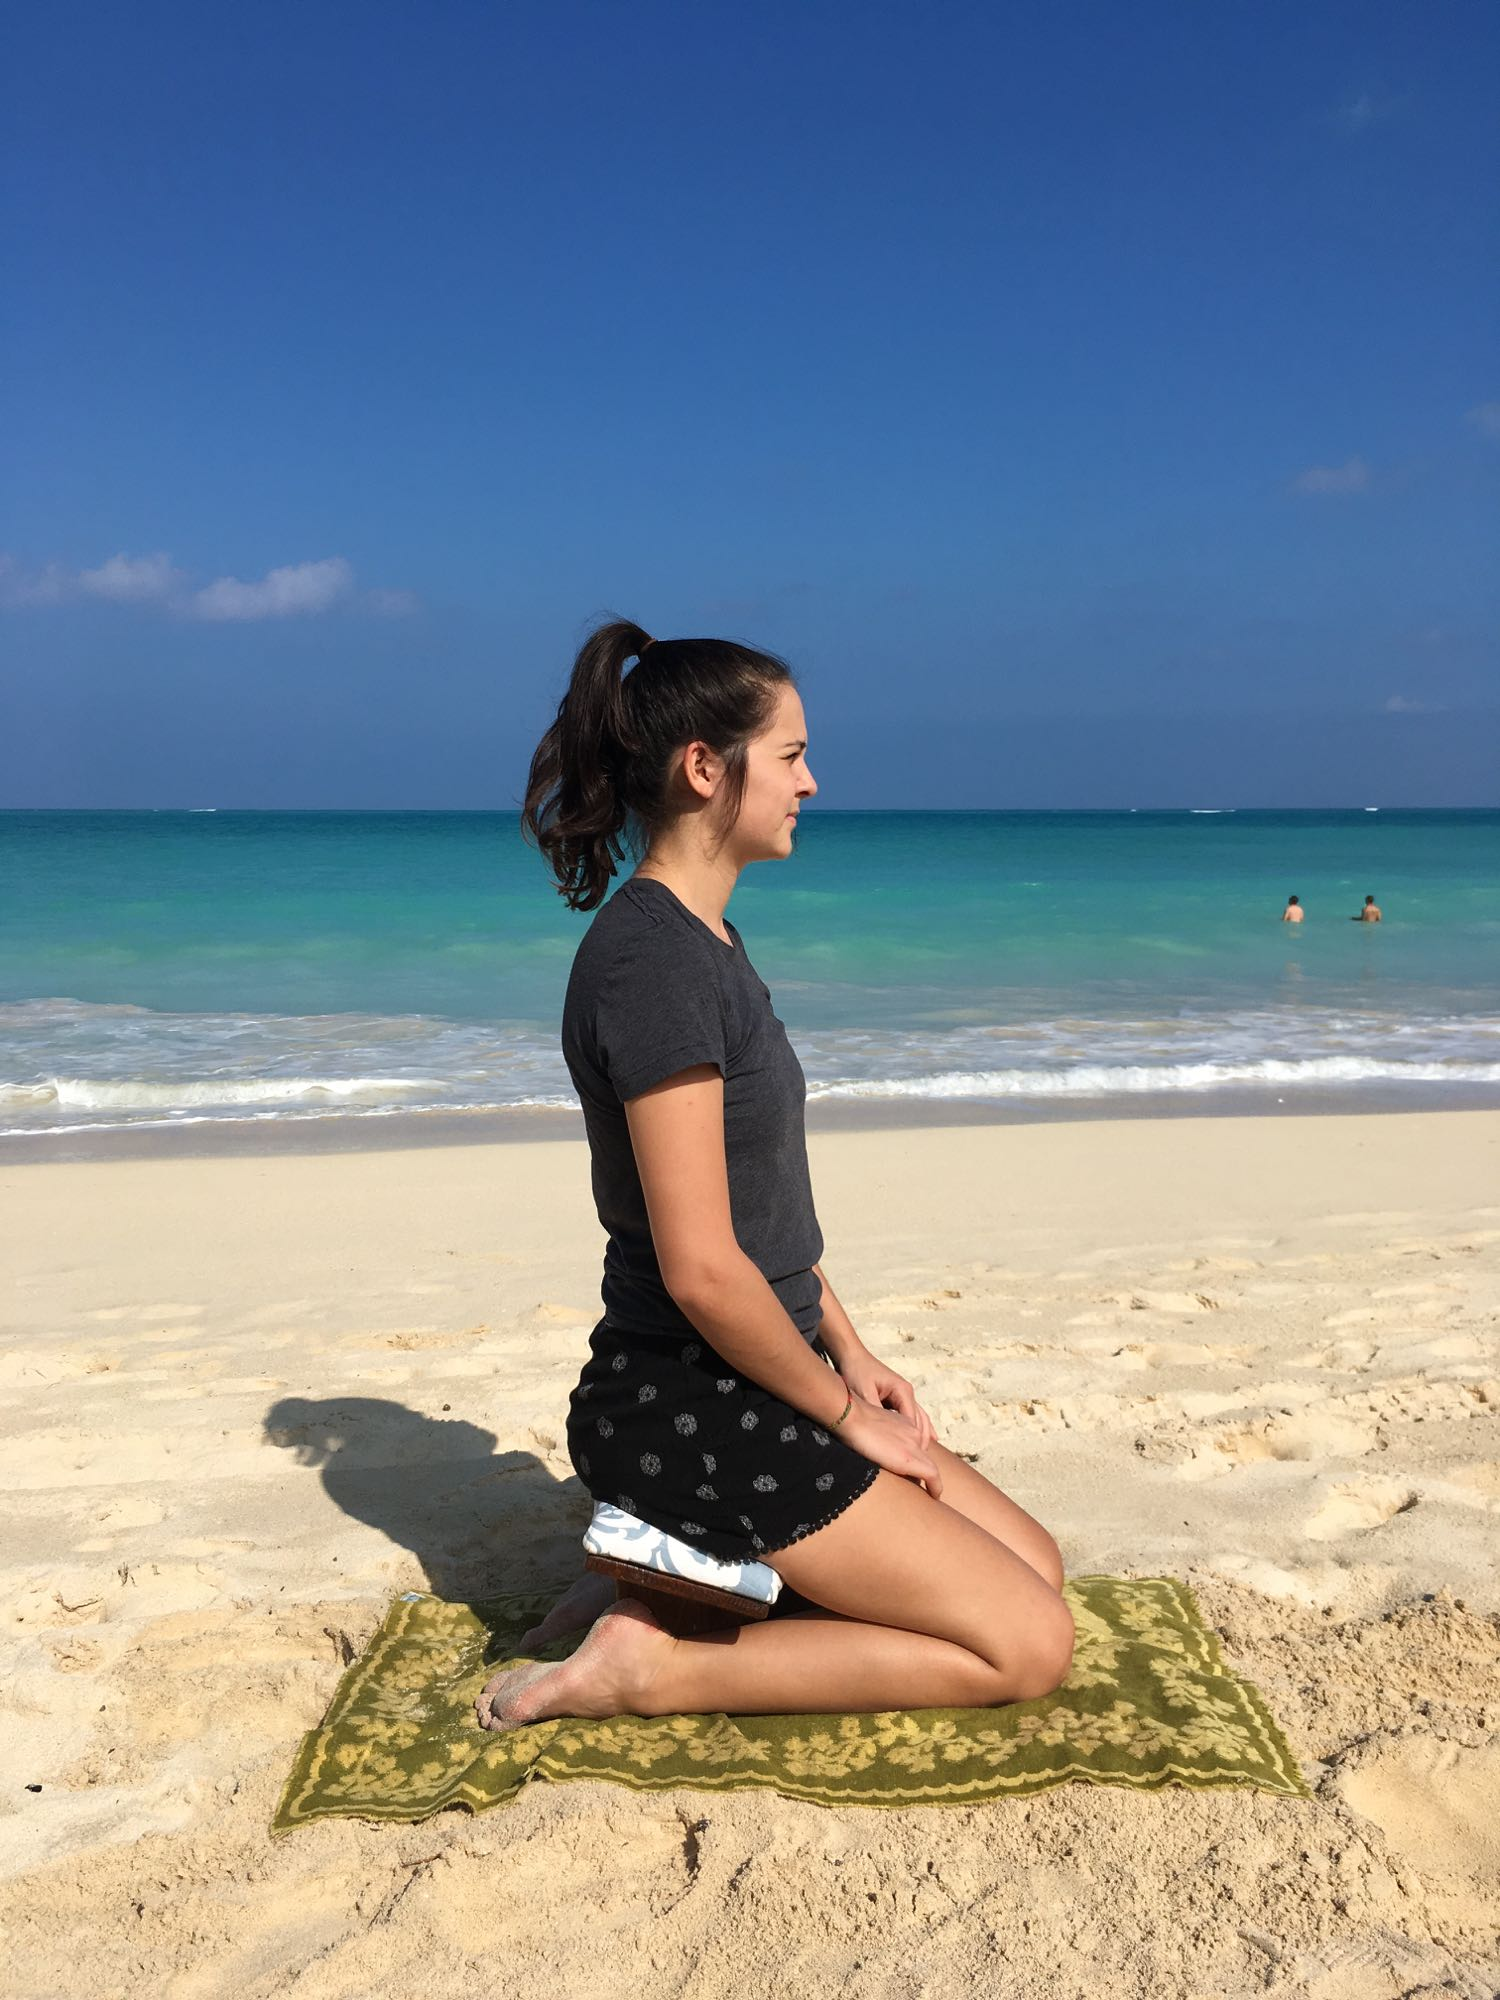 This is how you sit on our meditation benches. Kristina is the model and this picture was taken at the lovely Waimanalo beach.